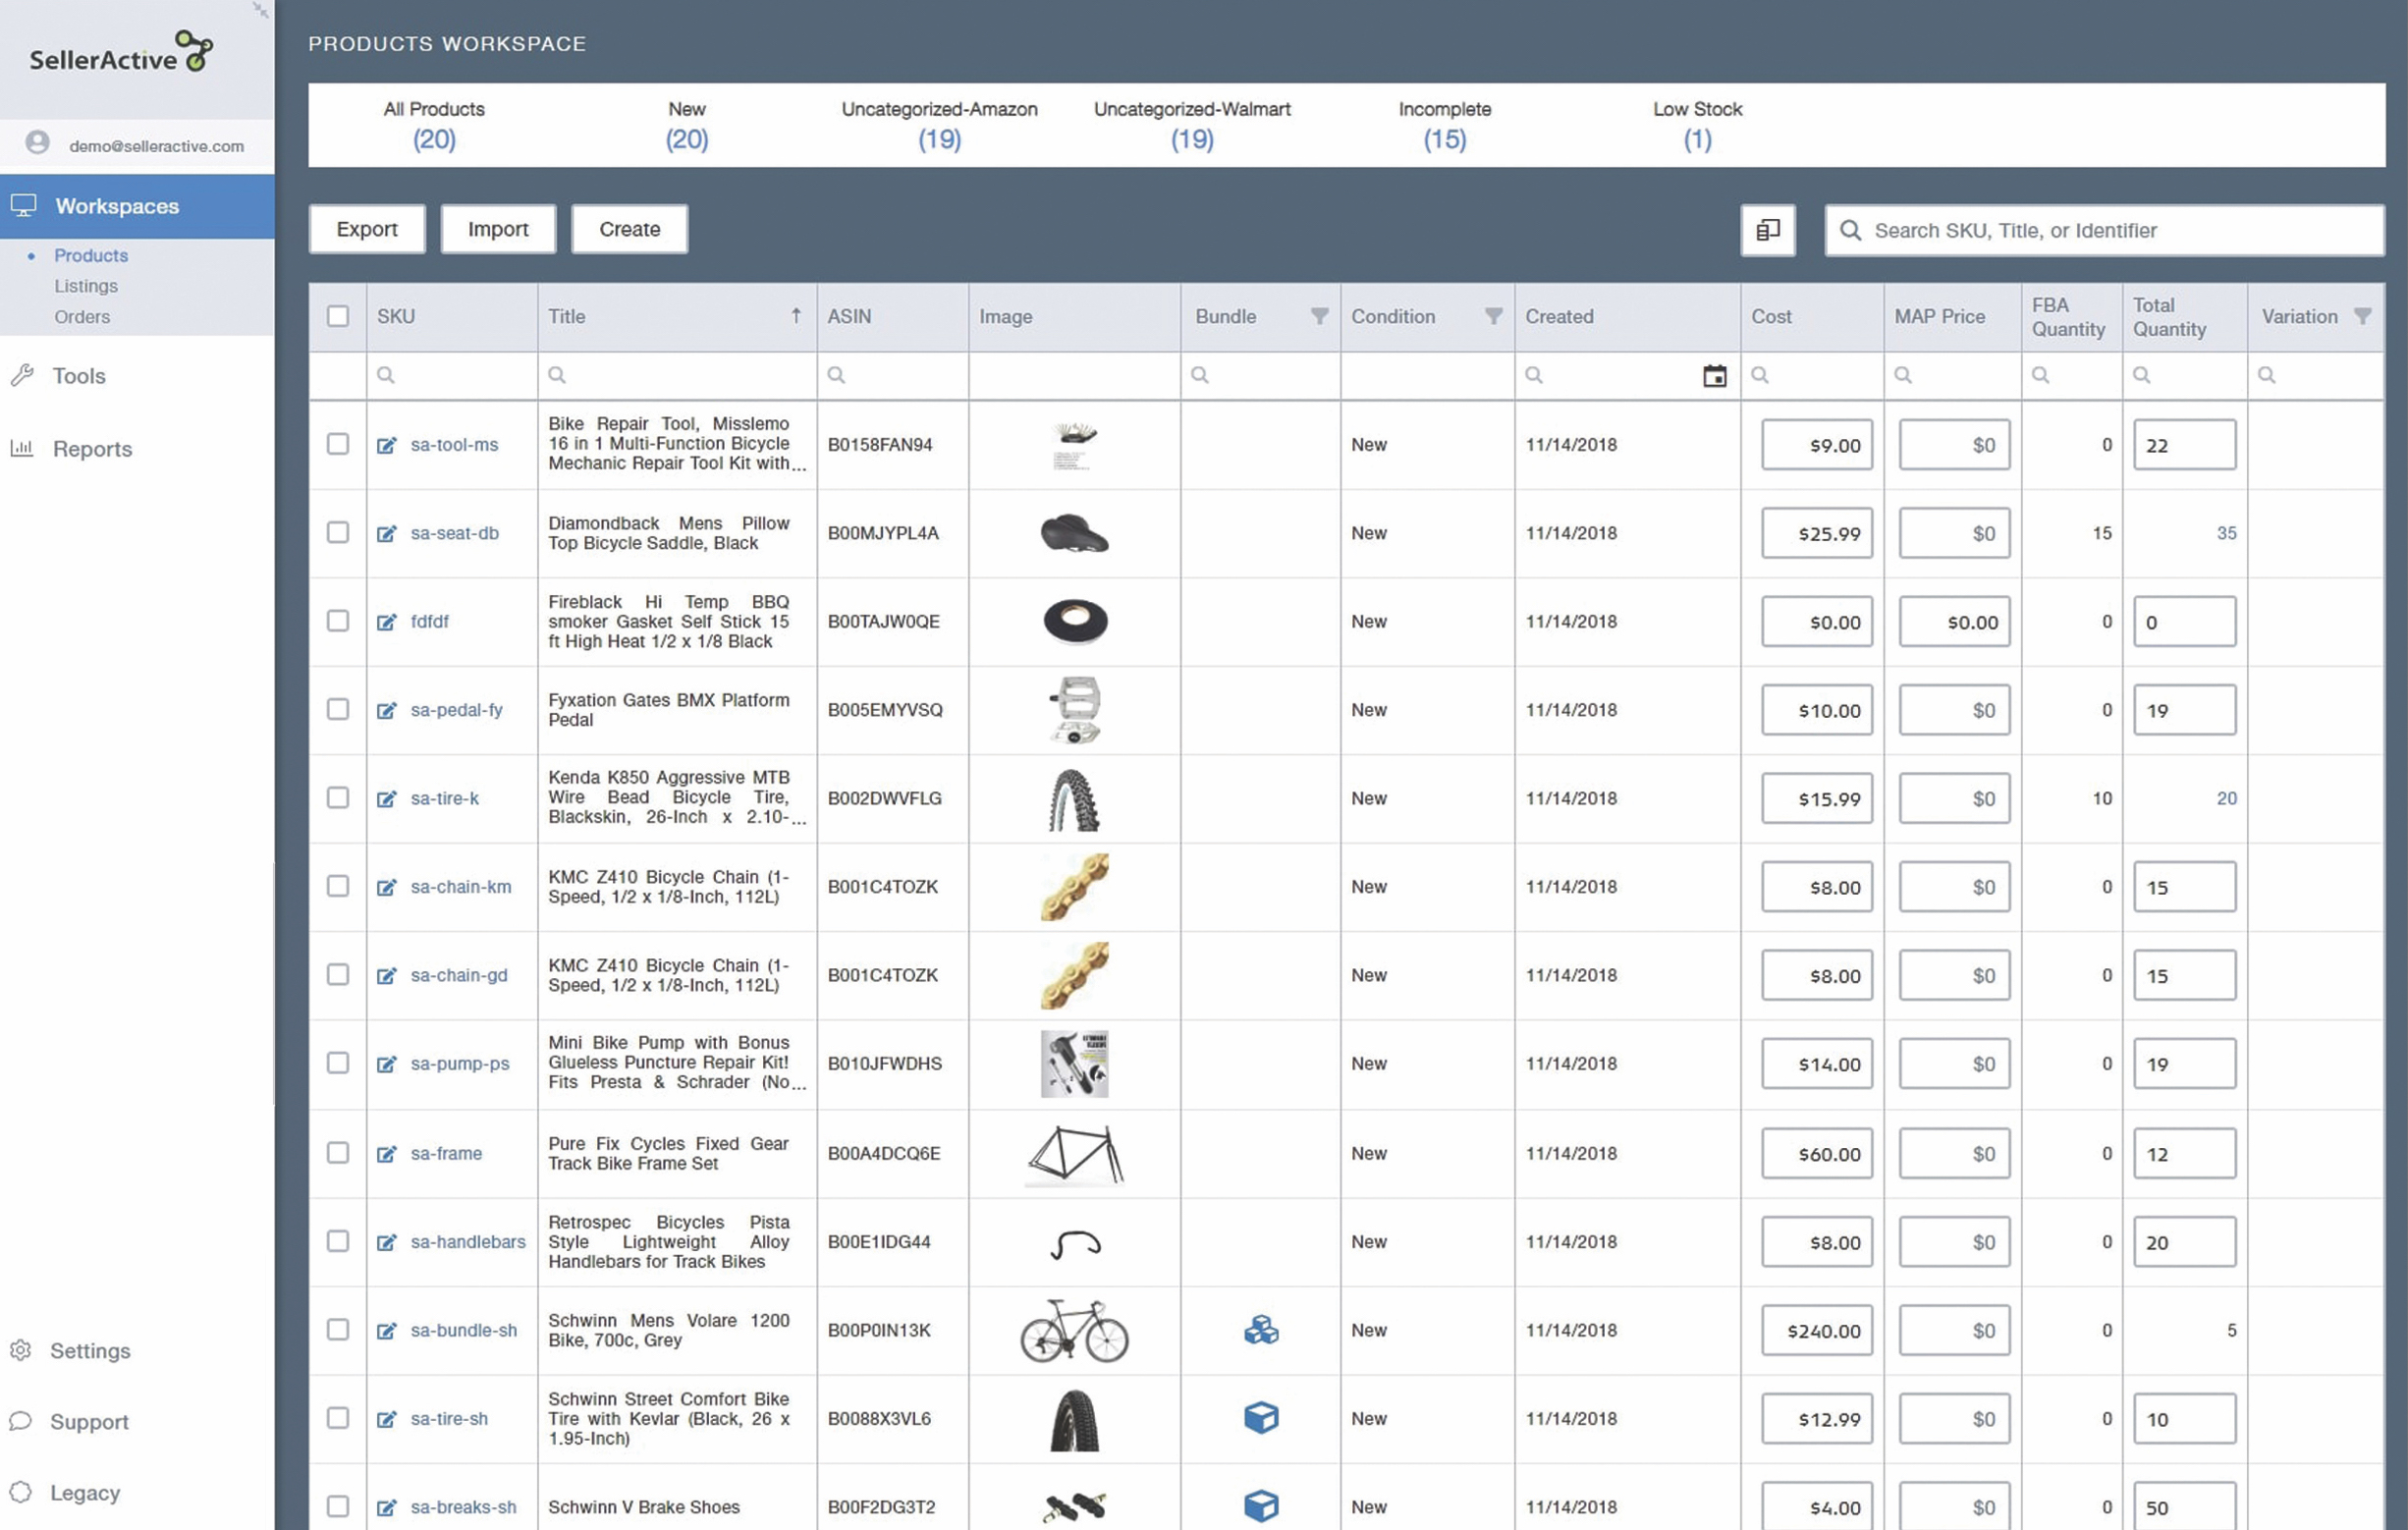 SellerActive's Products Workspace, where you can build a centralized catalog of items, and prepare them for sale.